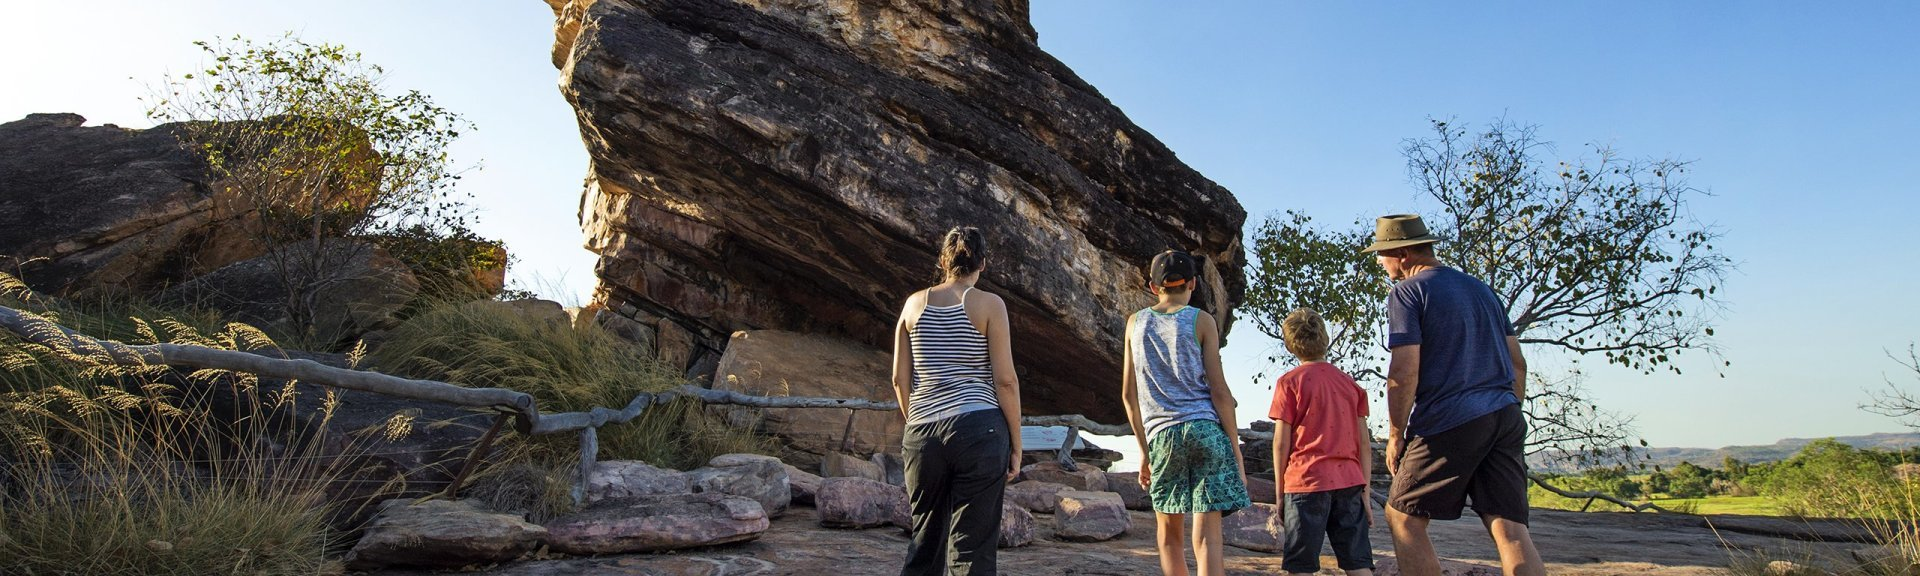 Ubirr rock art. Photo: Shaana McNaught